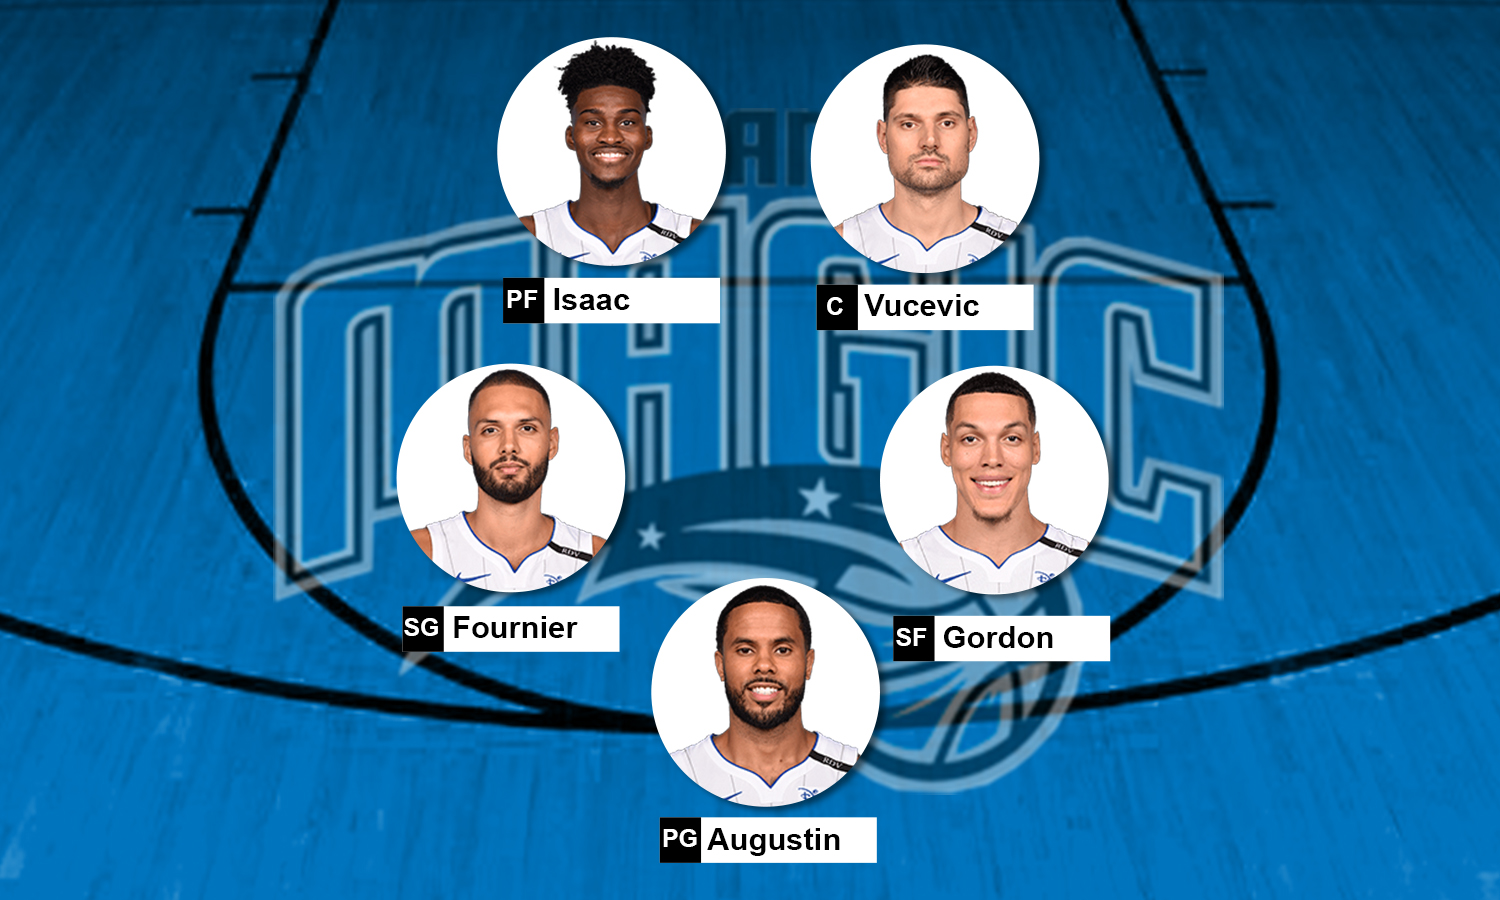 Escalação Orlando Magic